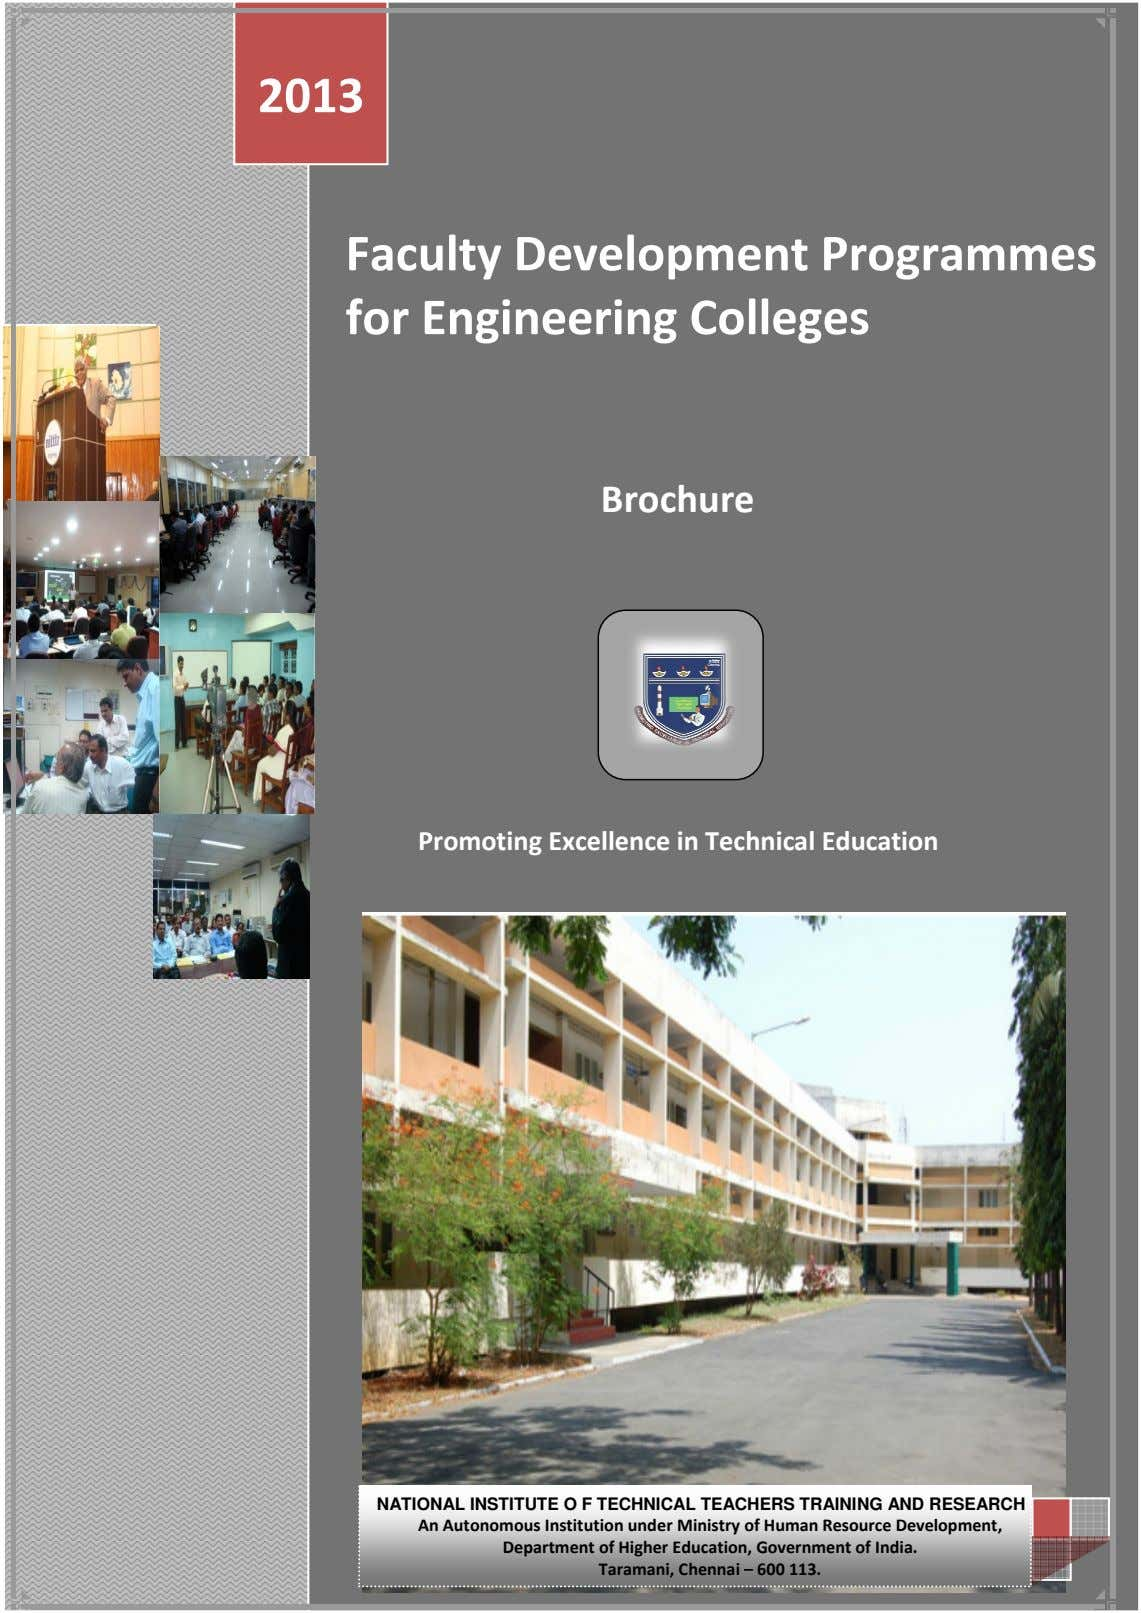 2013 Fa Programmes fo culty Development r Engineering Colleg es Brochure Promoting Excellence in Technical